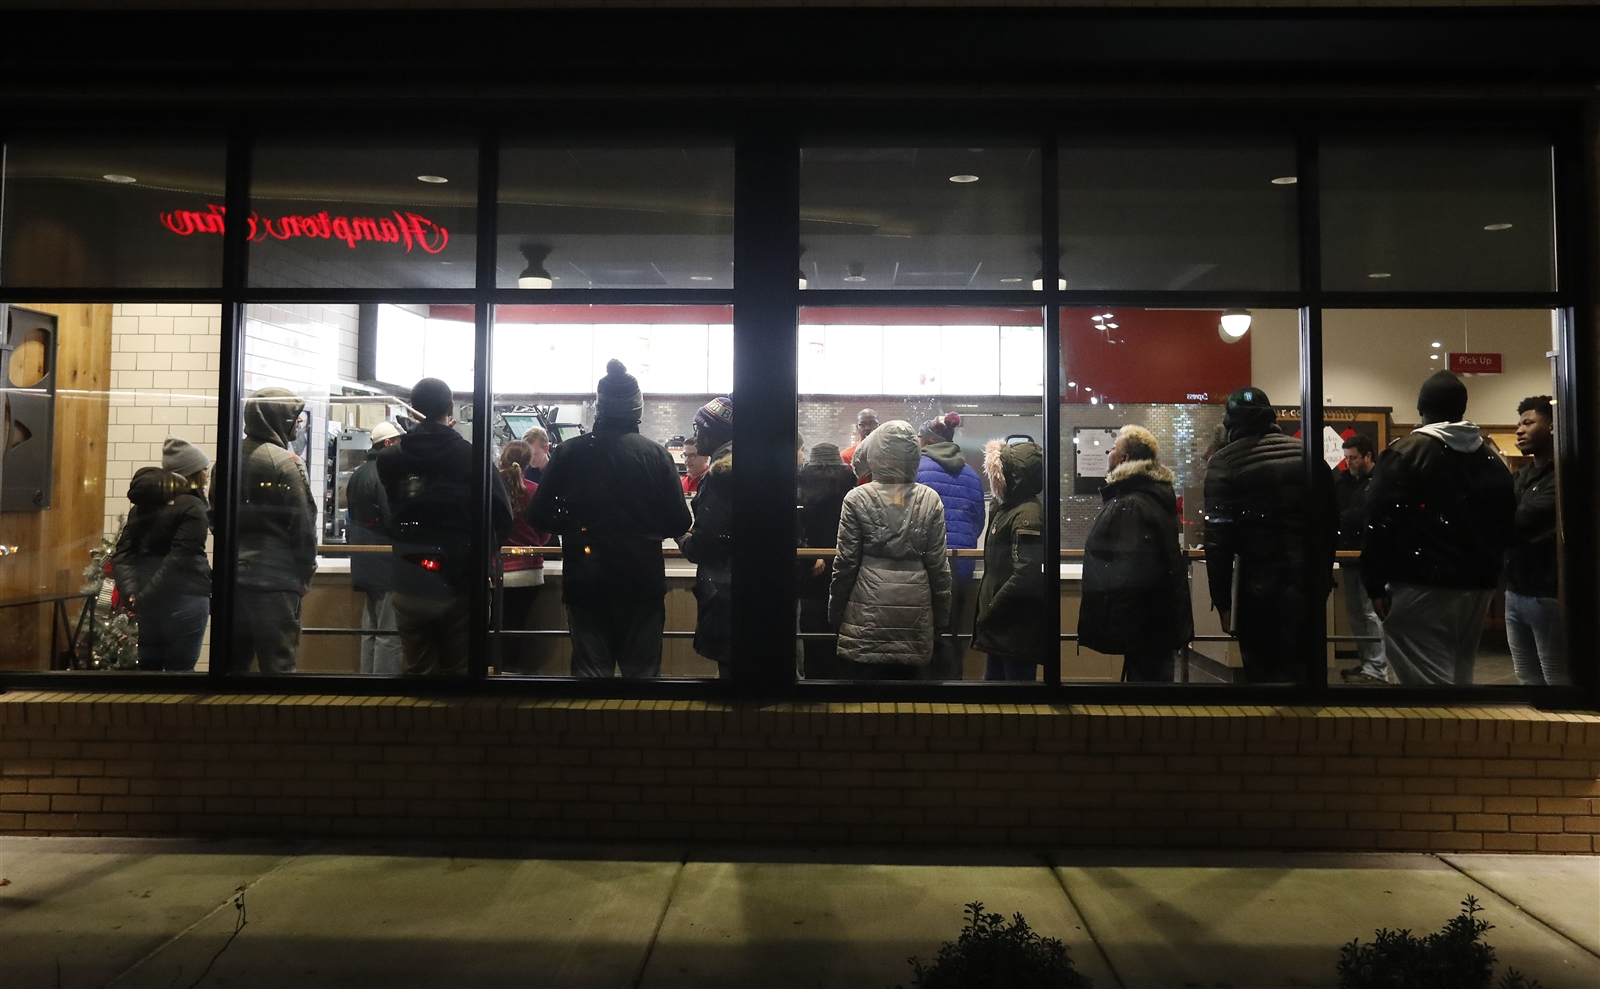 Chicken for breakfast? The sun wasn't up yet but eager customers line up to be served as the first Chick-fil-A restaurant in Western New York opened today in Cheektowaga. (Mark Mulville/Buffalo News)